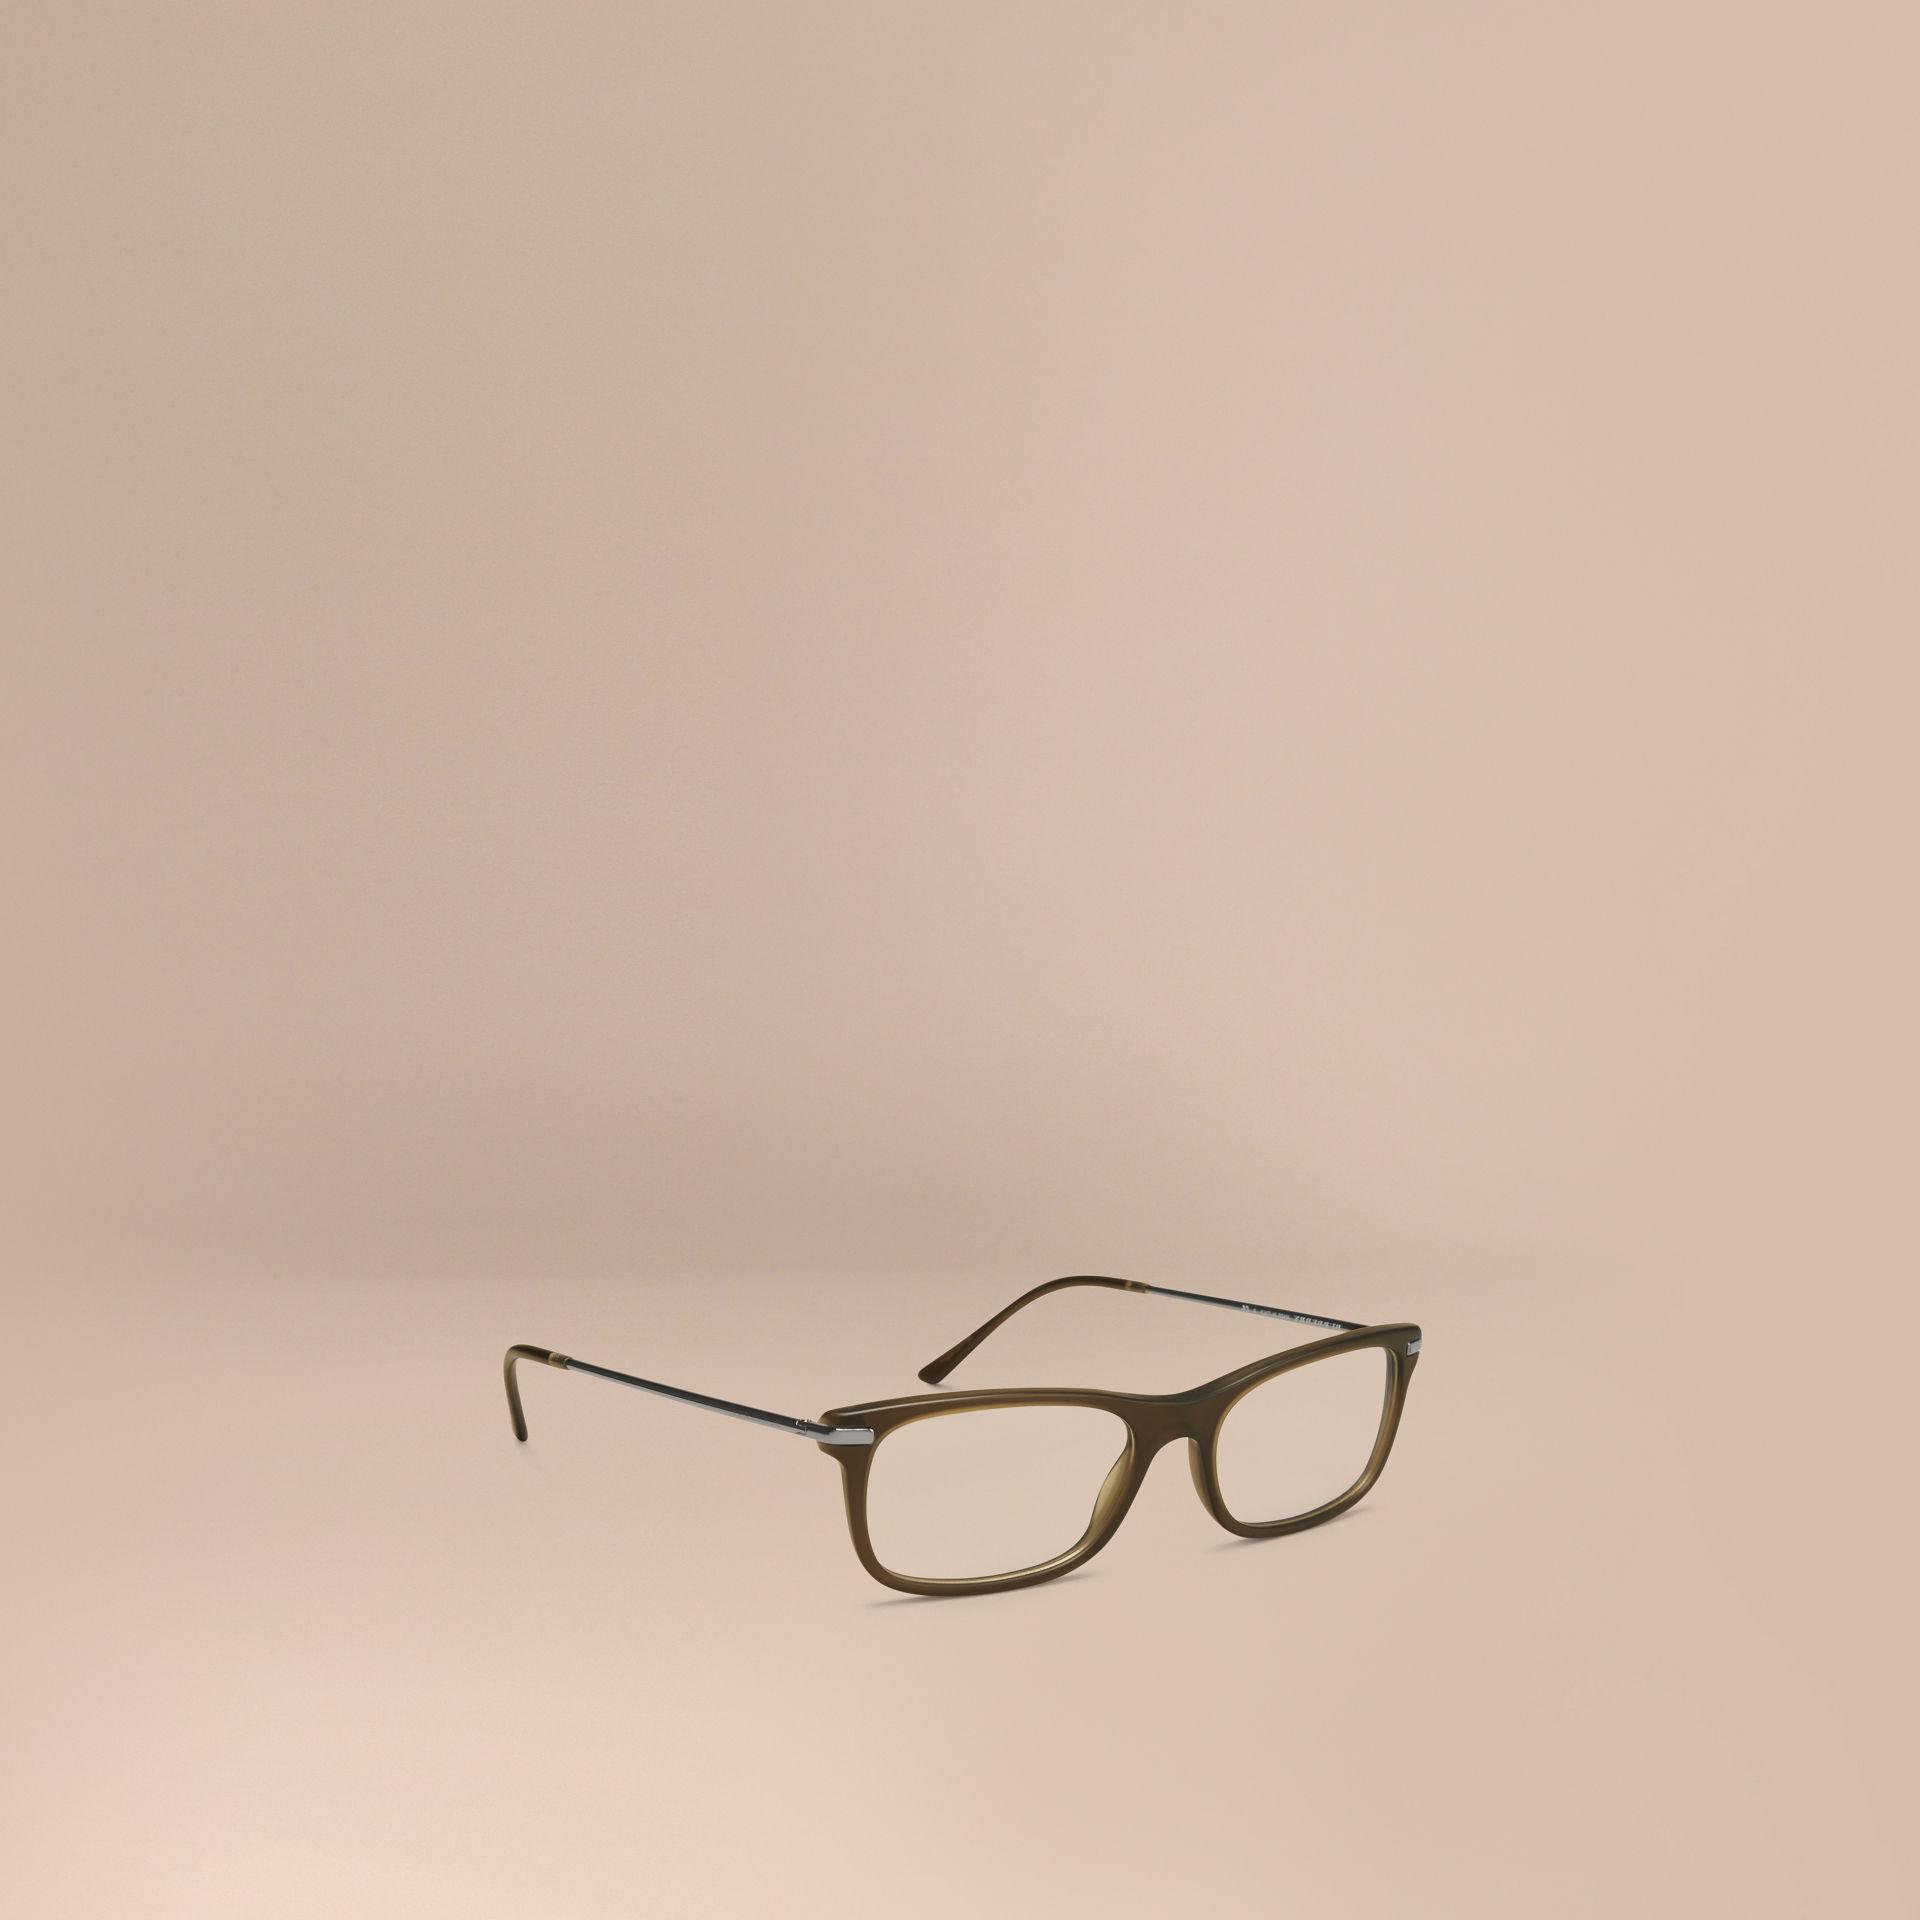 Burberry Square Optical Frames Olive In Green For Men Lyst